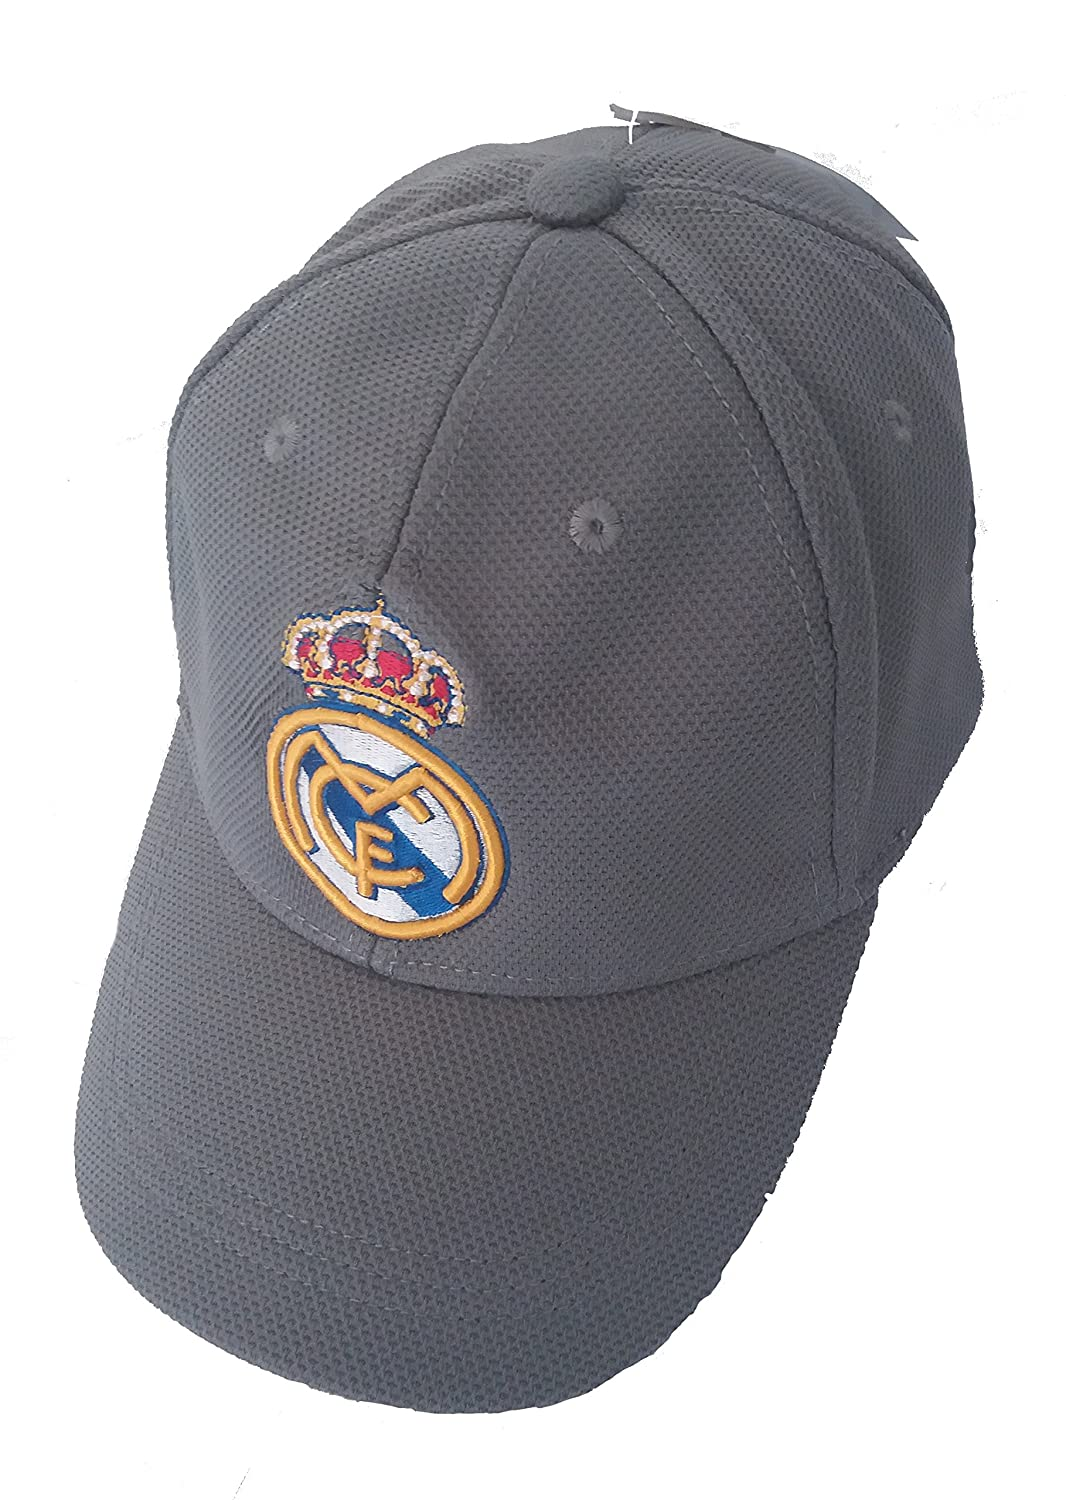 Real Madrid F.C. – Gorra (bordada): Amazon.es: Deportes y aire libre